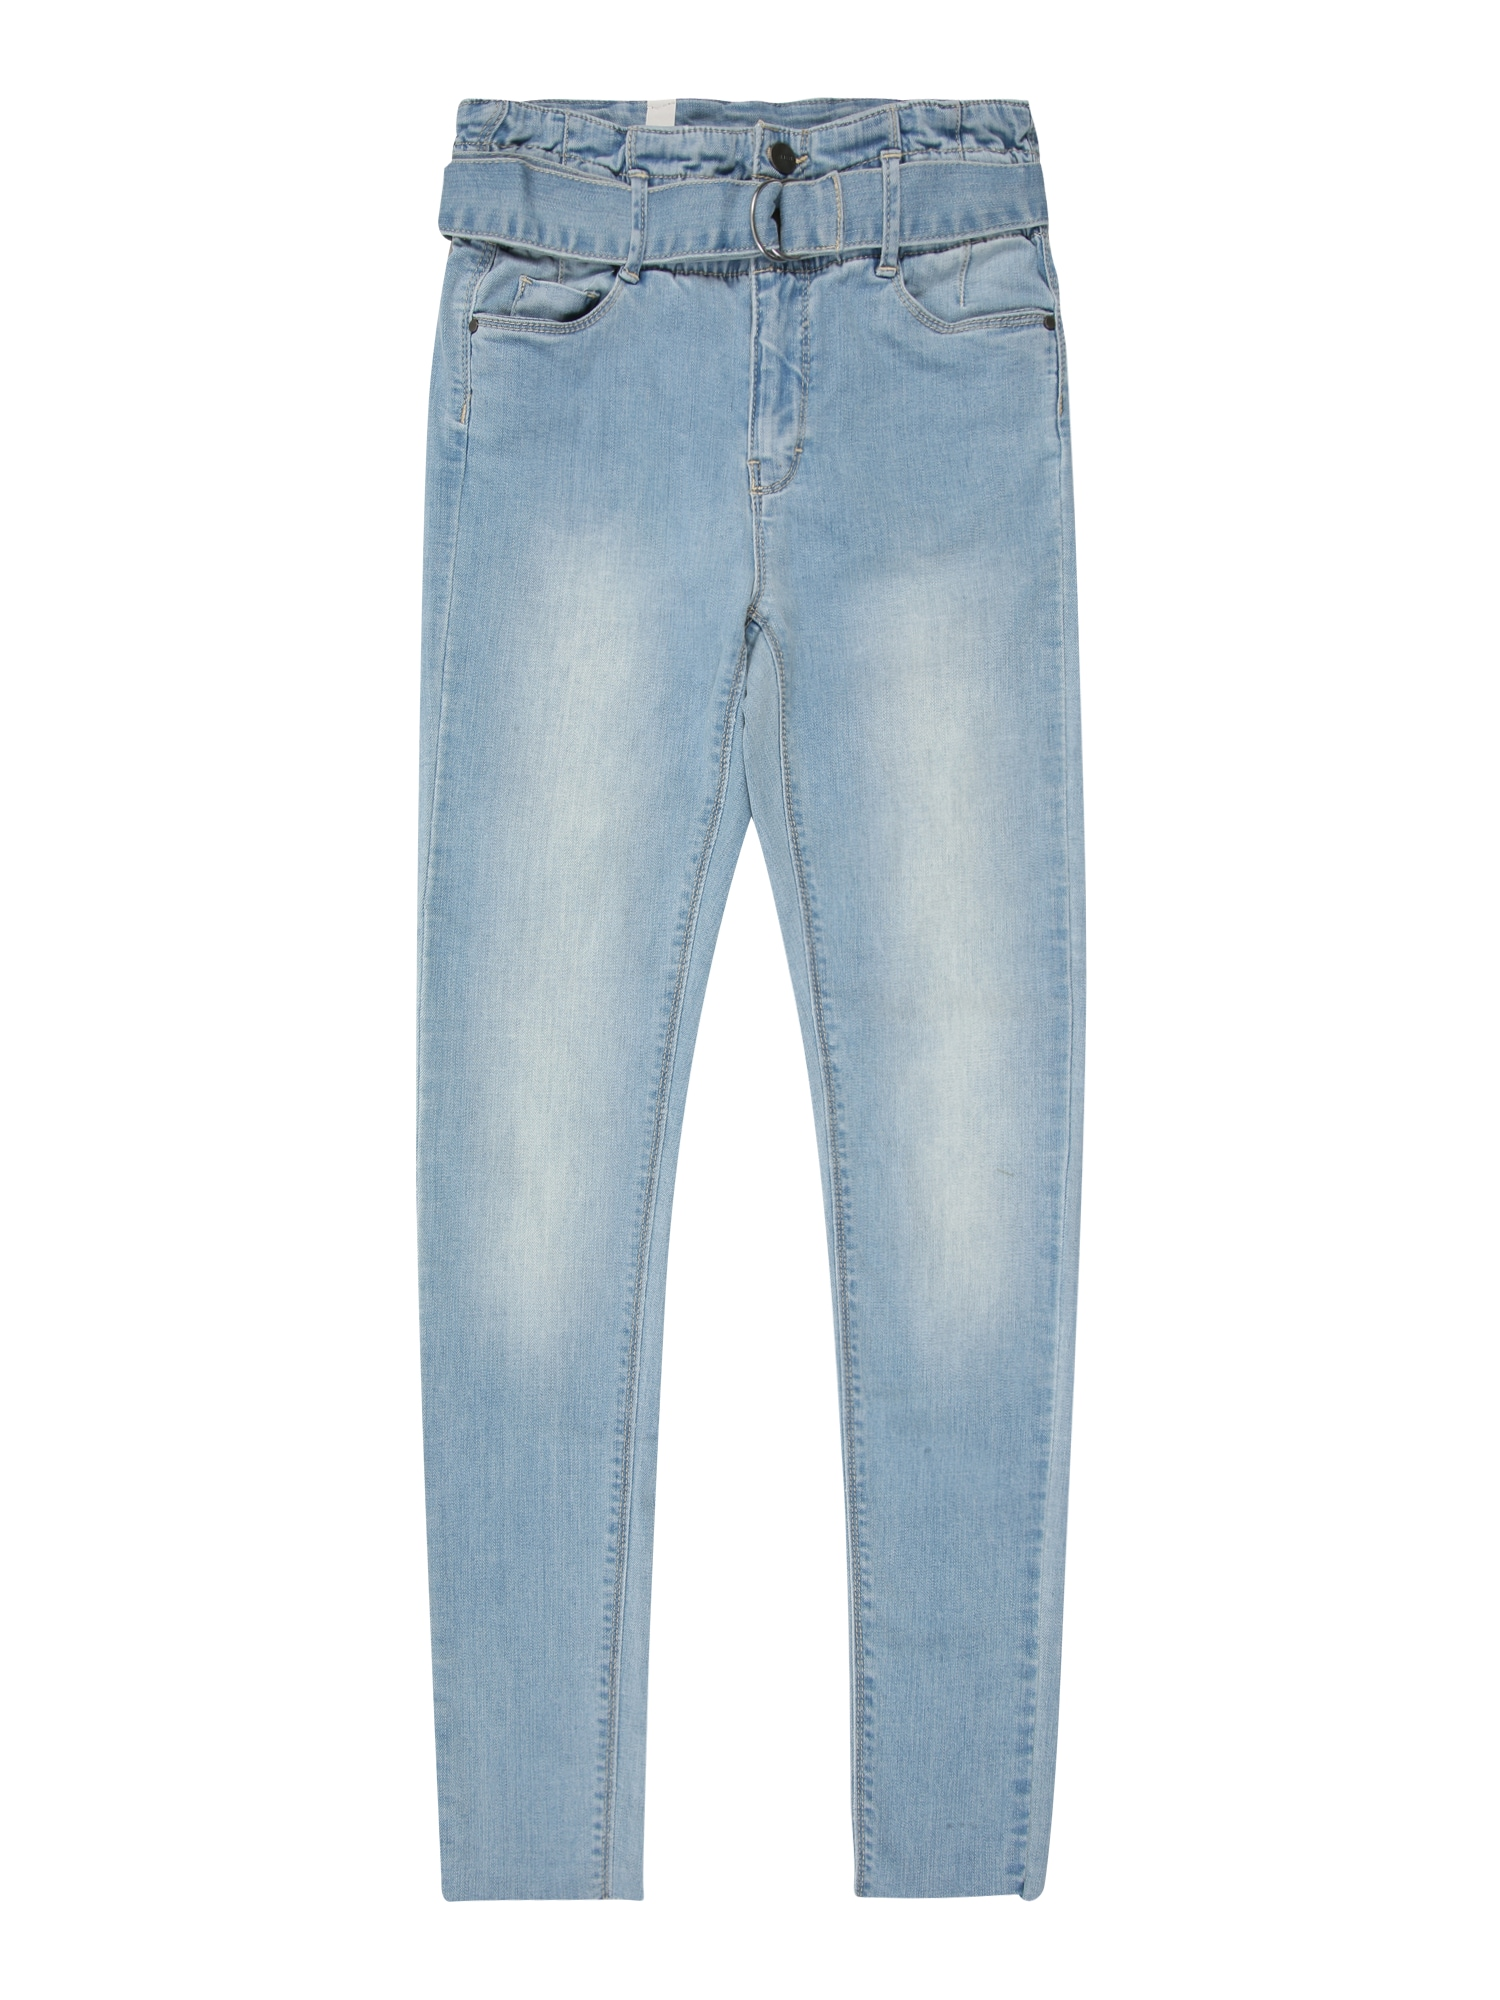 NAME IT Džínsy 'NLFPIL DNMBATULLA 1333 HW ANCLE PANT'  modrá denim